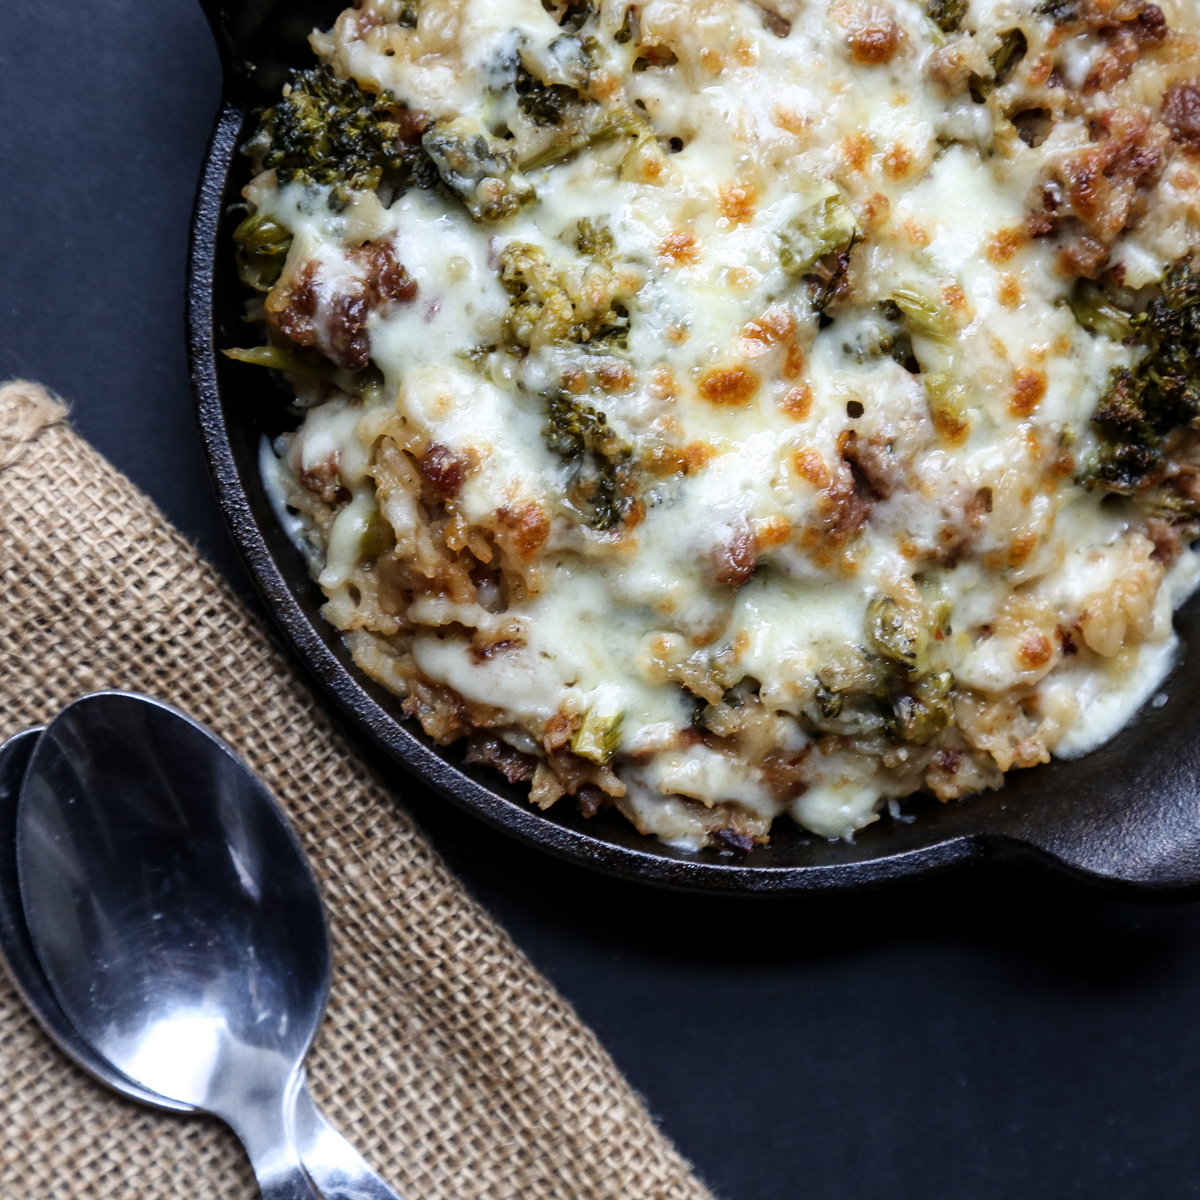 Cheesy Broccoli Rice Casserole with Sausage